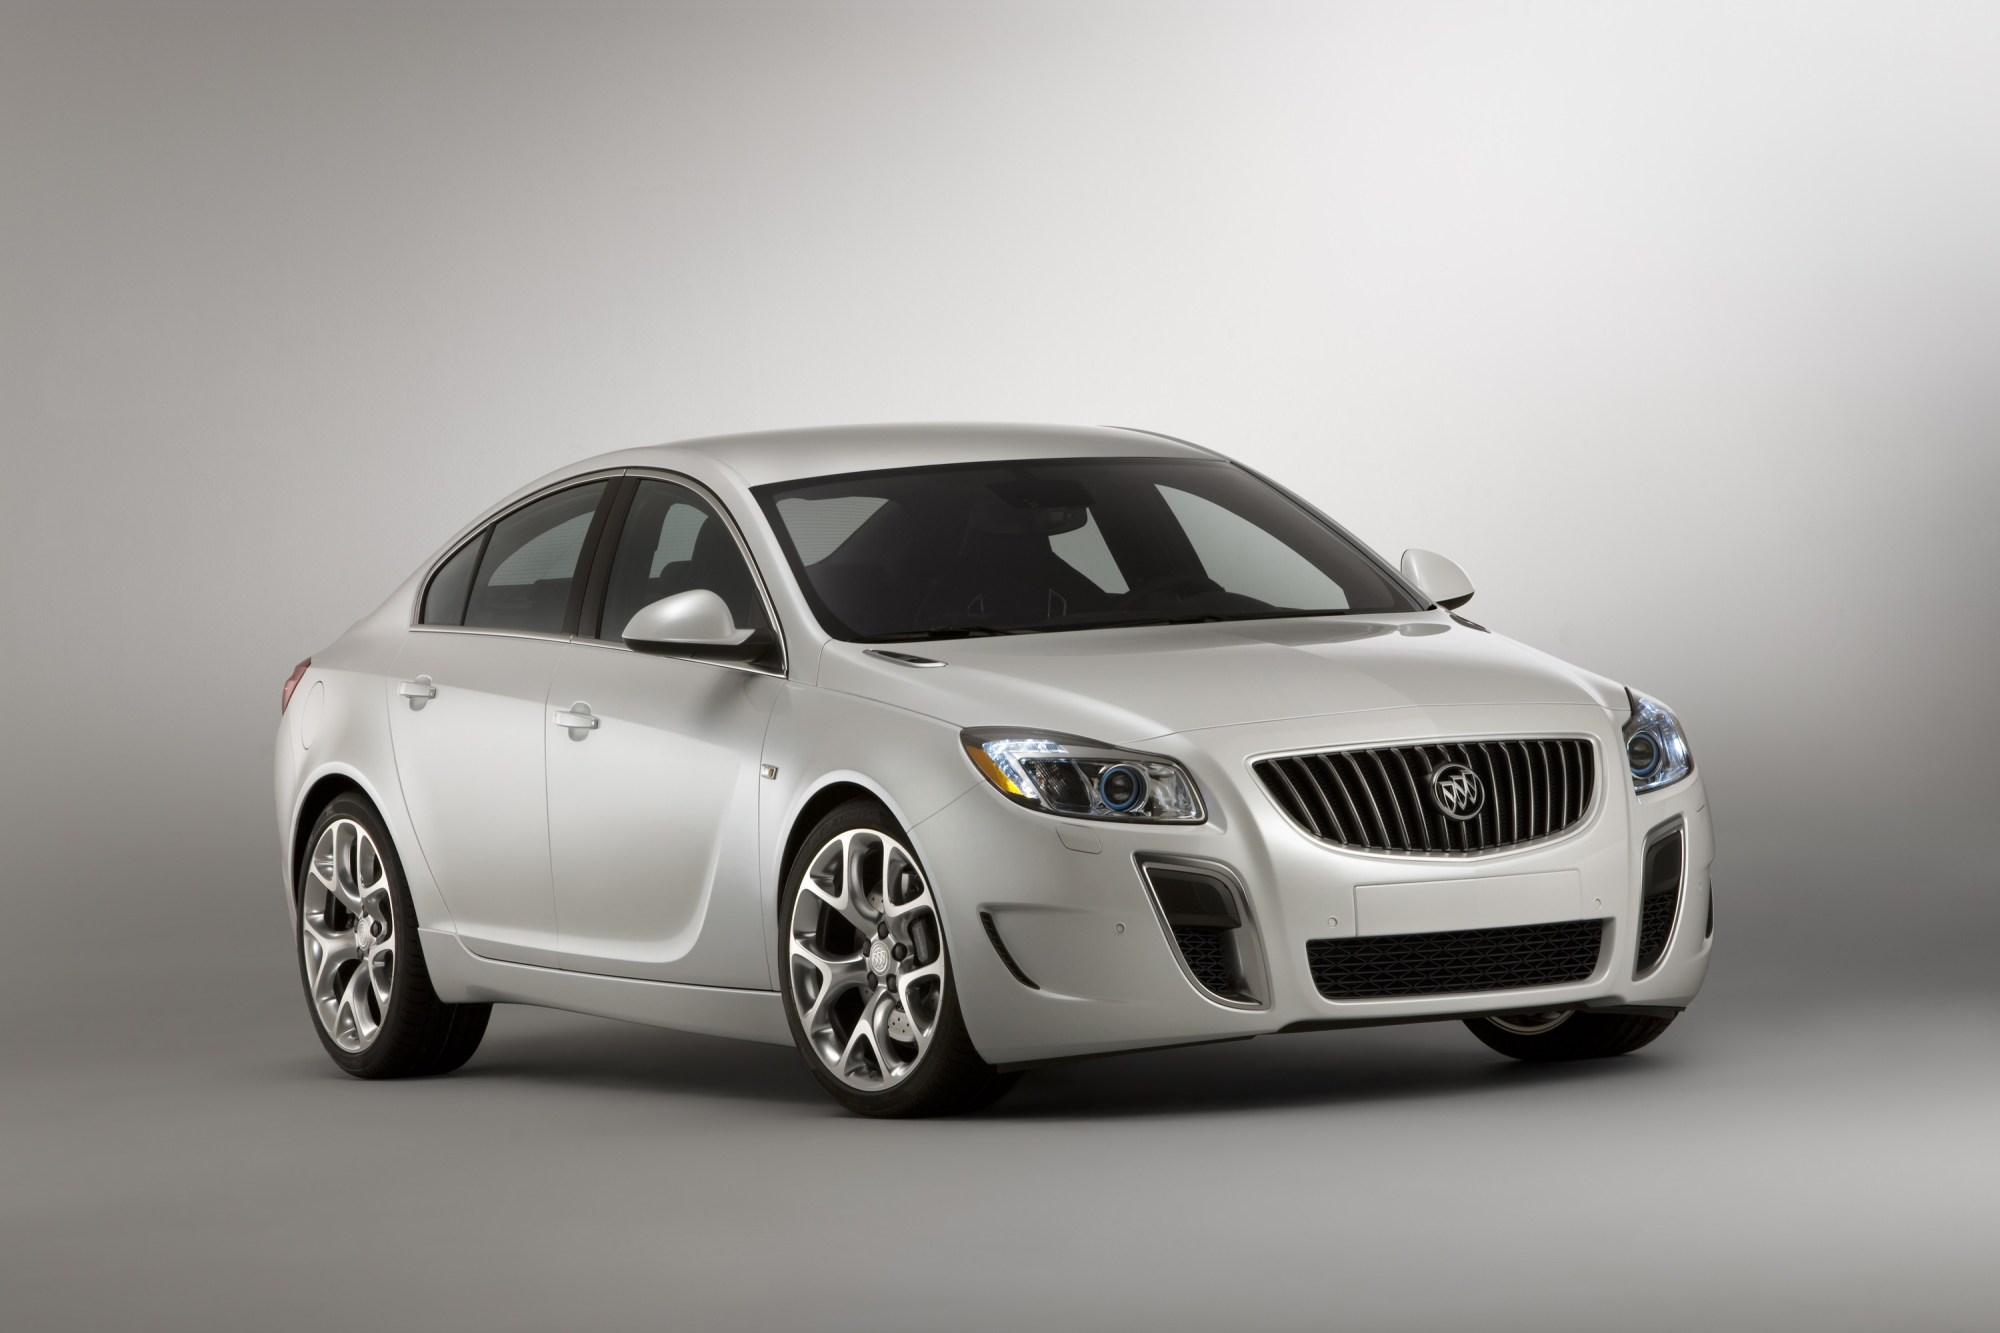 hight resolution of  buick regal 2010 present